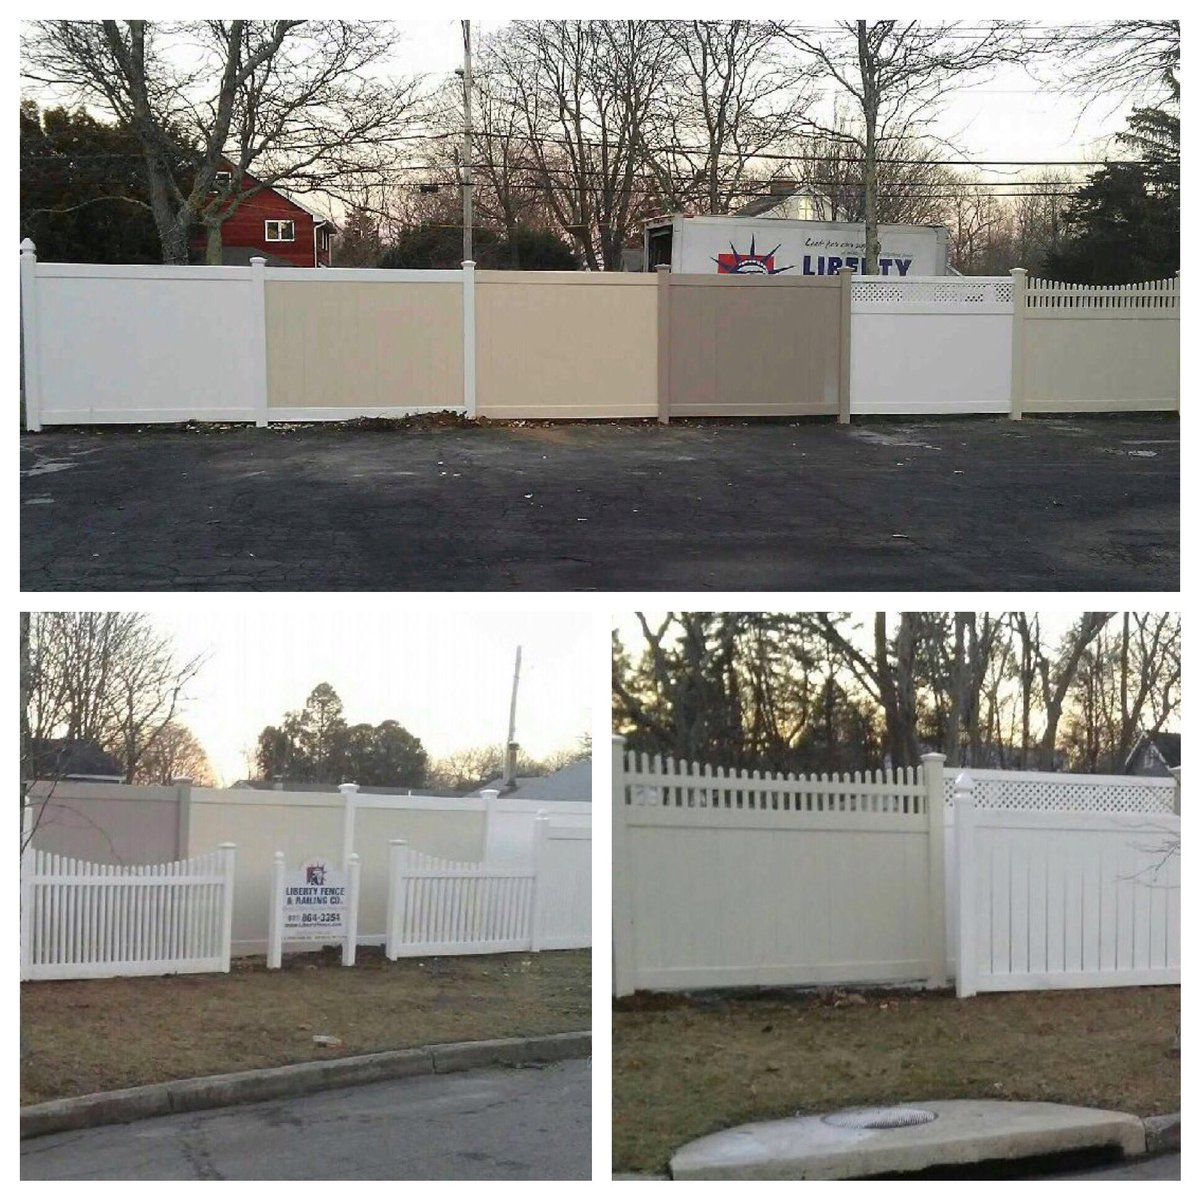 Liberty Fence Railing On Twitter Introducing Our New Display Center At Bubba S Garden Nursery 638 Larkfield Rd In East Northport Ny